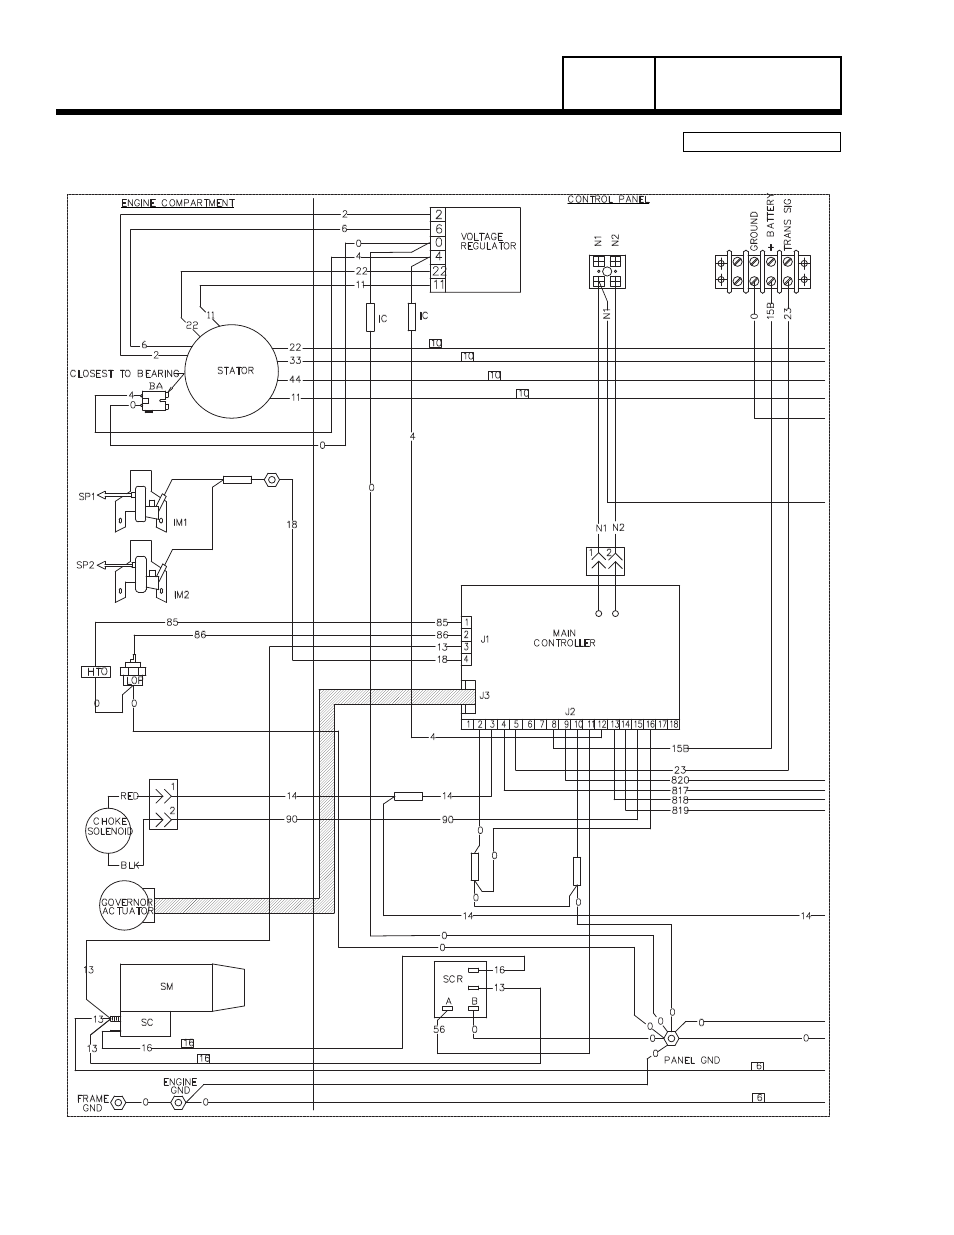 generac transfer switch wiring schematic unique generac. Black Bedroom Furniture Sets. Home Design Ideas